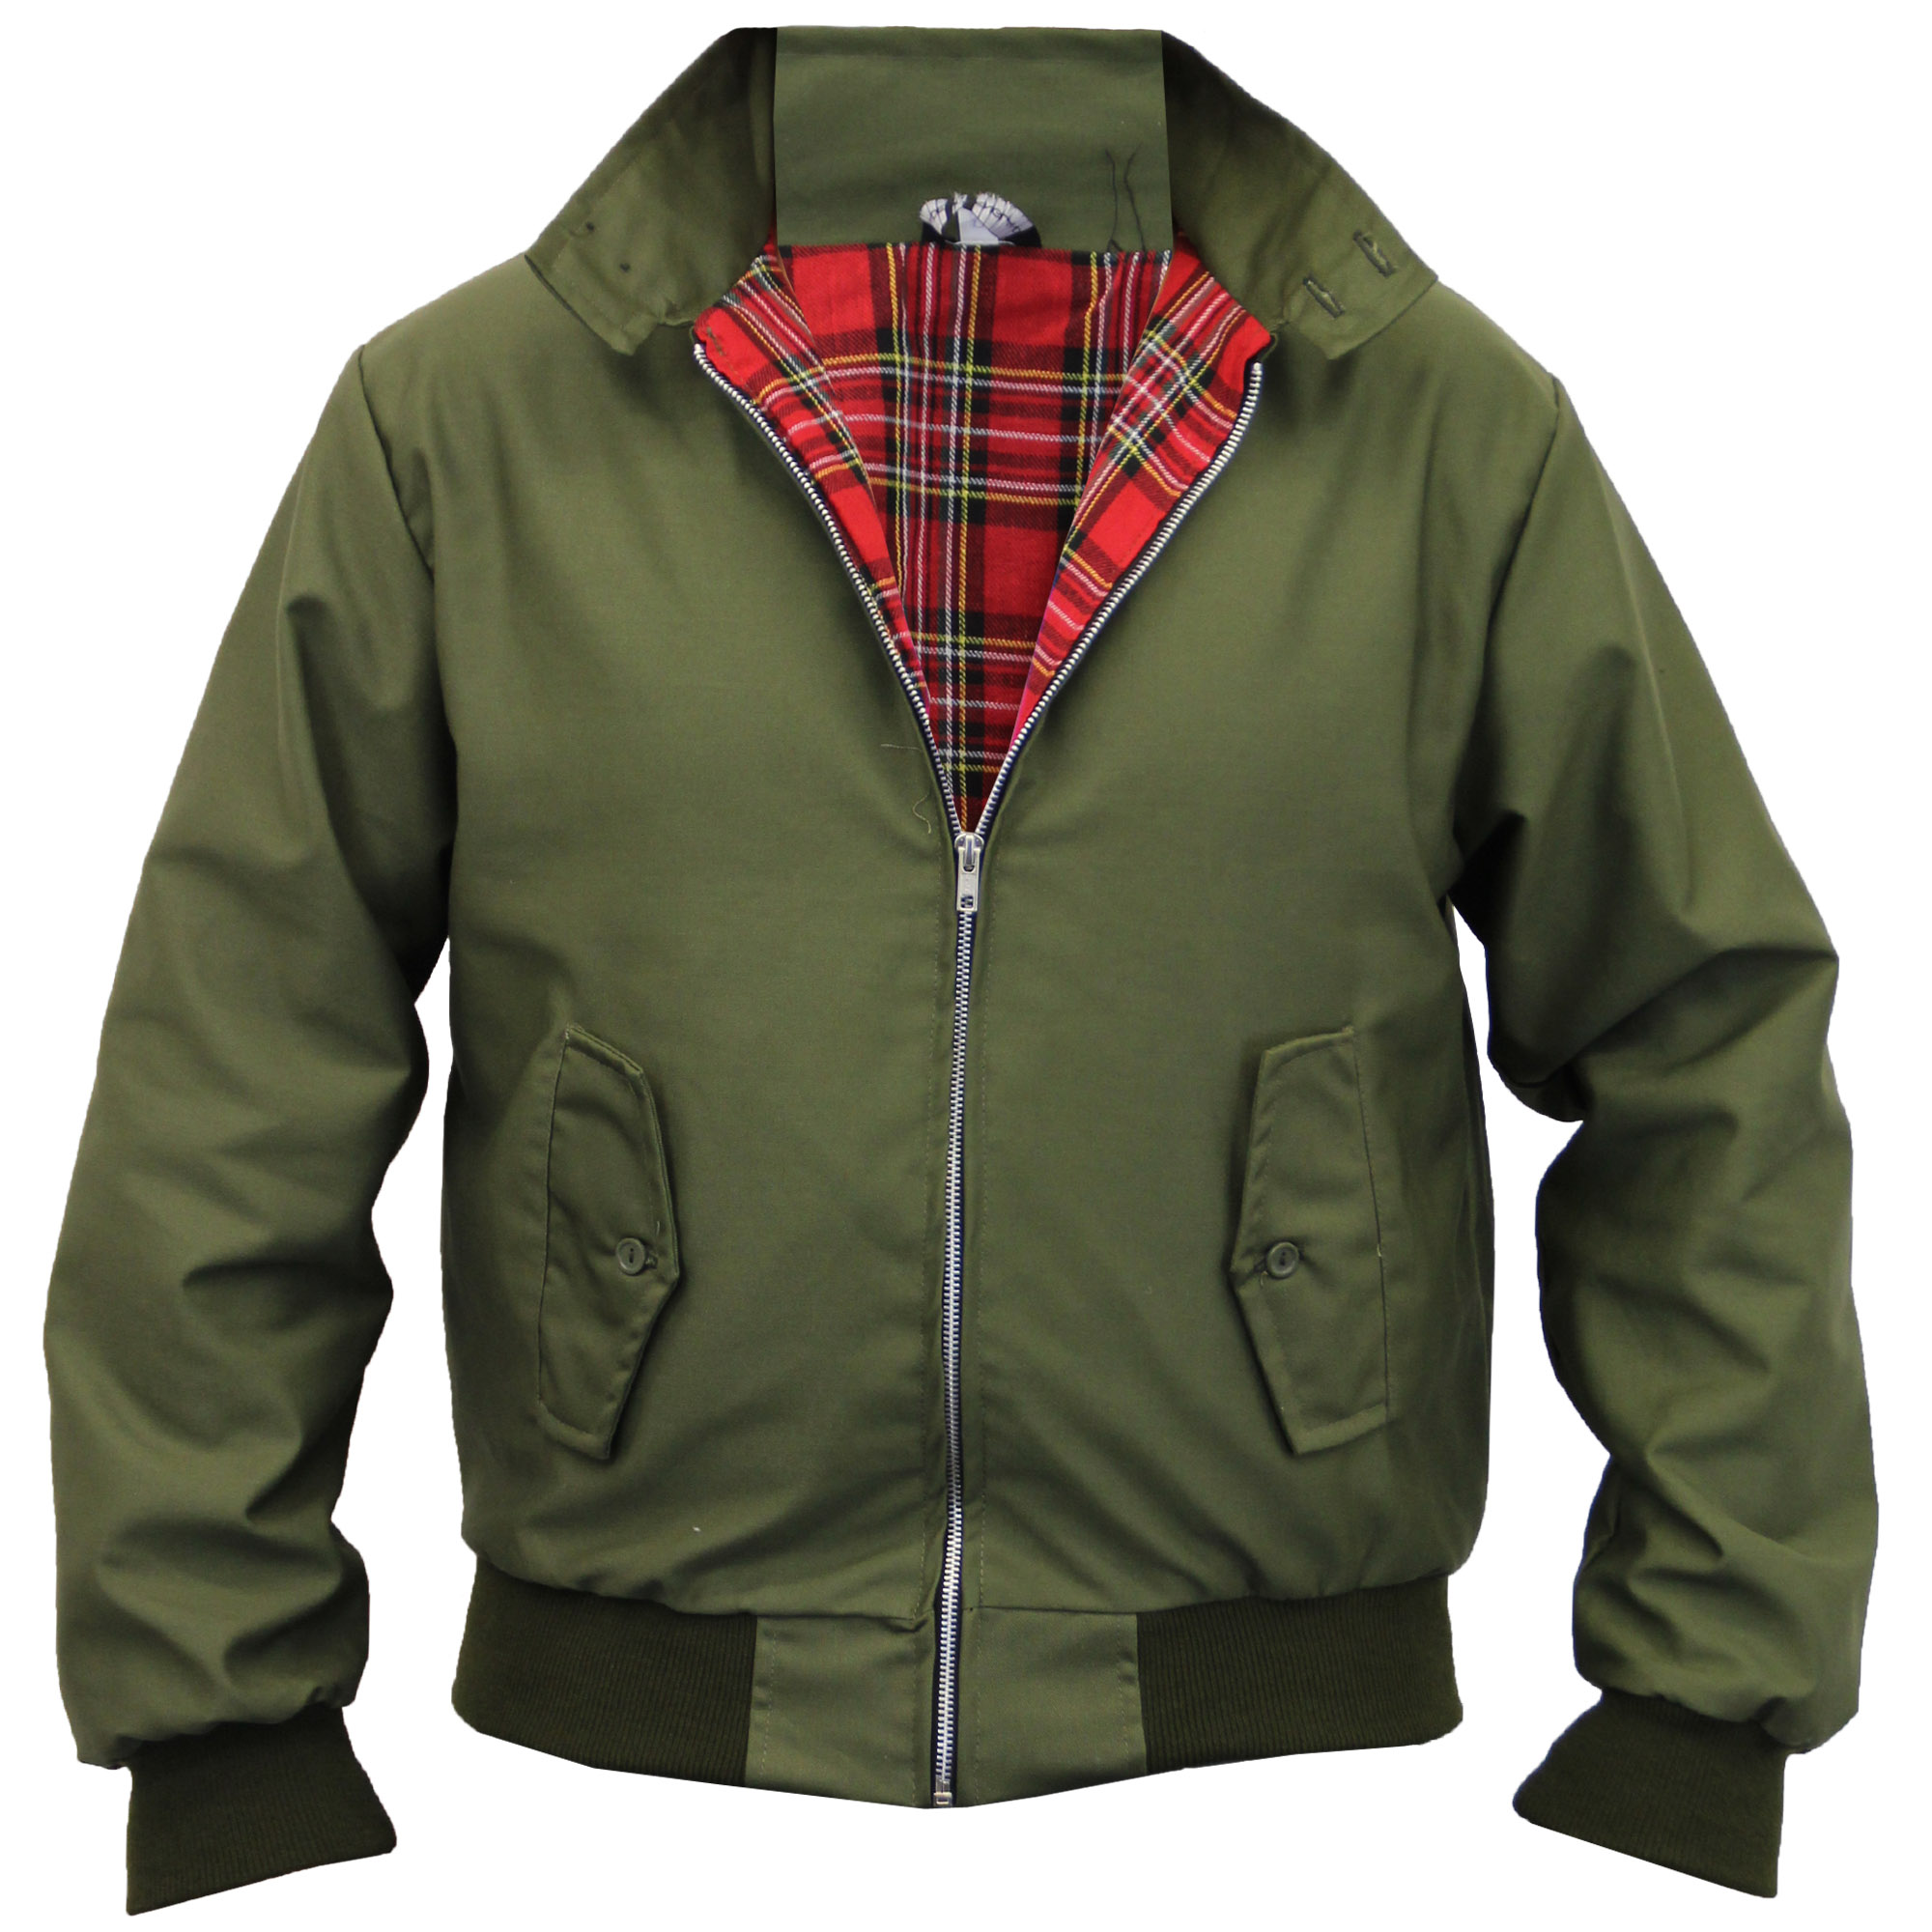 Shop men's coats from Burberry. The range includes both single-breasted and double-breasted designs alongside trench coats, parkas, and more. Fleece-lined Check Harrington Jacket. $ Click the star icon to add this item to your Favourites. Click the star icon to .